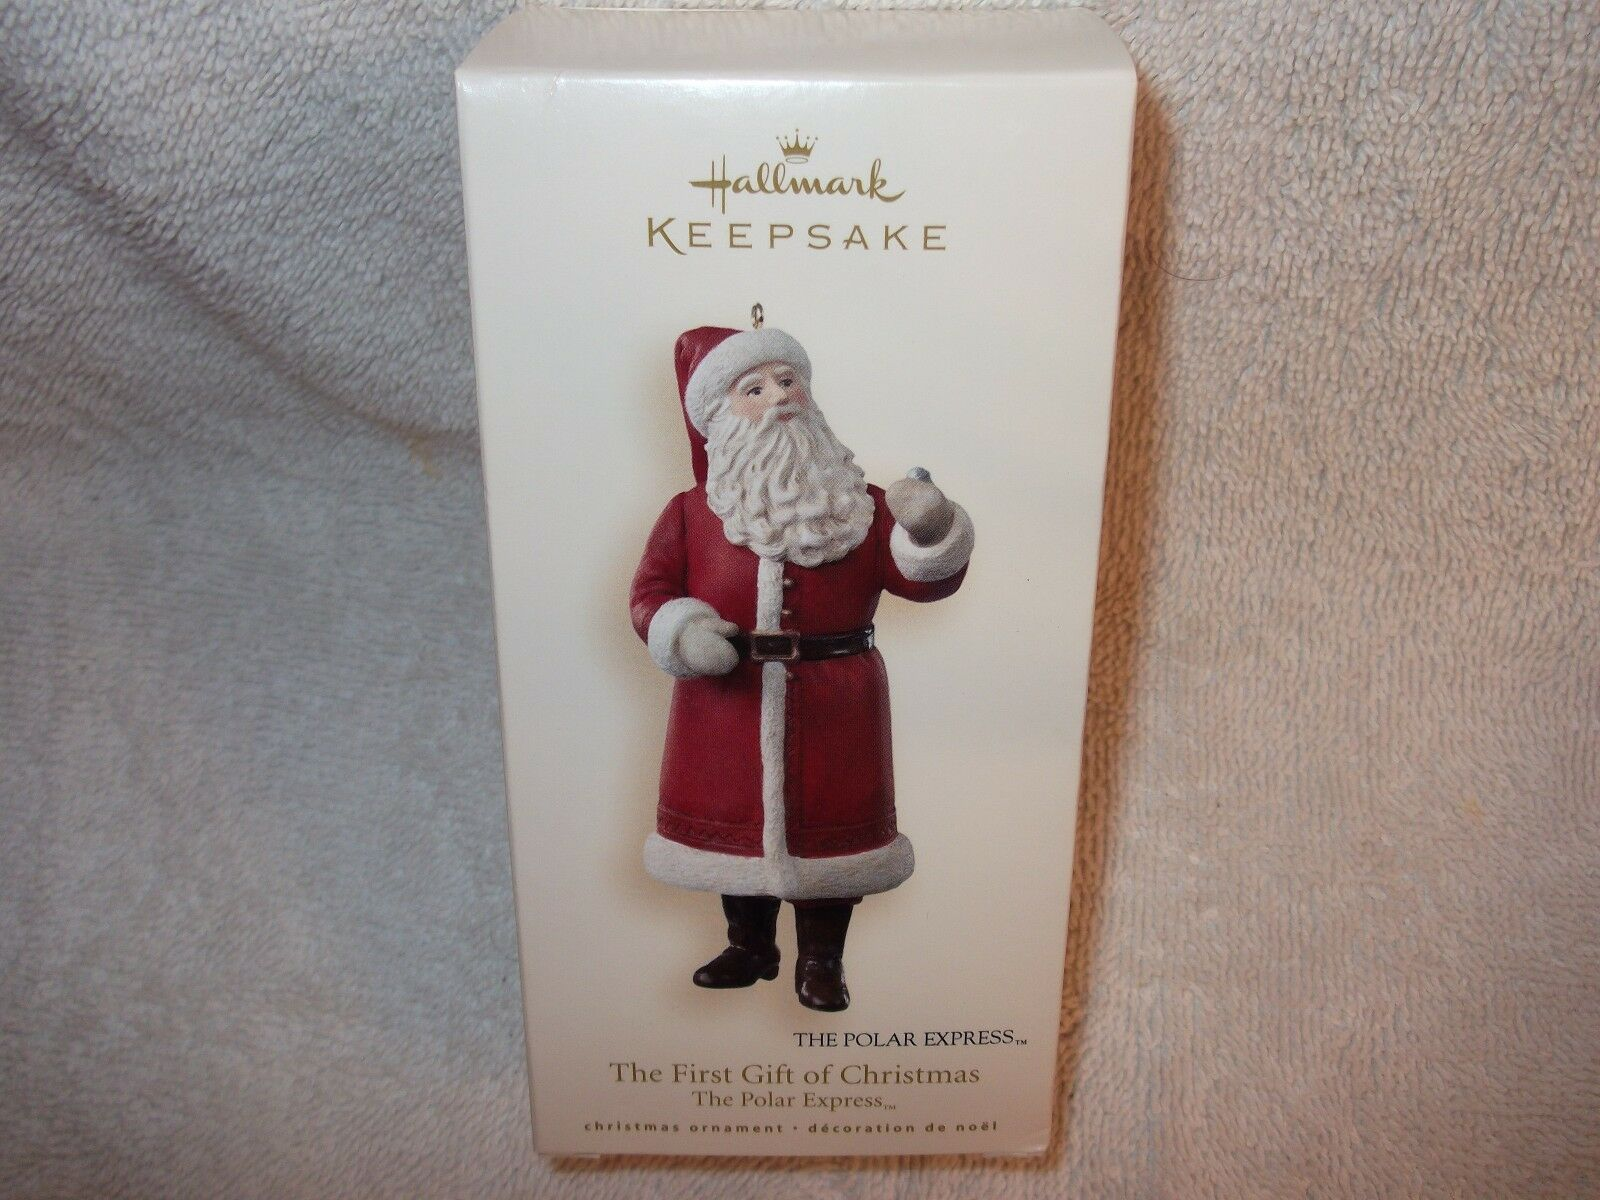 hallmark keepsake 2007 the first gift of christmas the polar express ornament